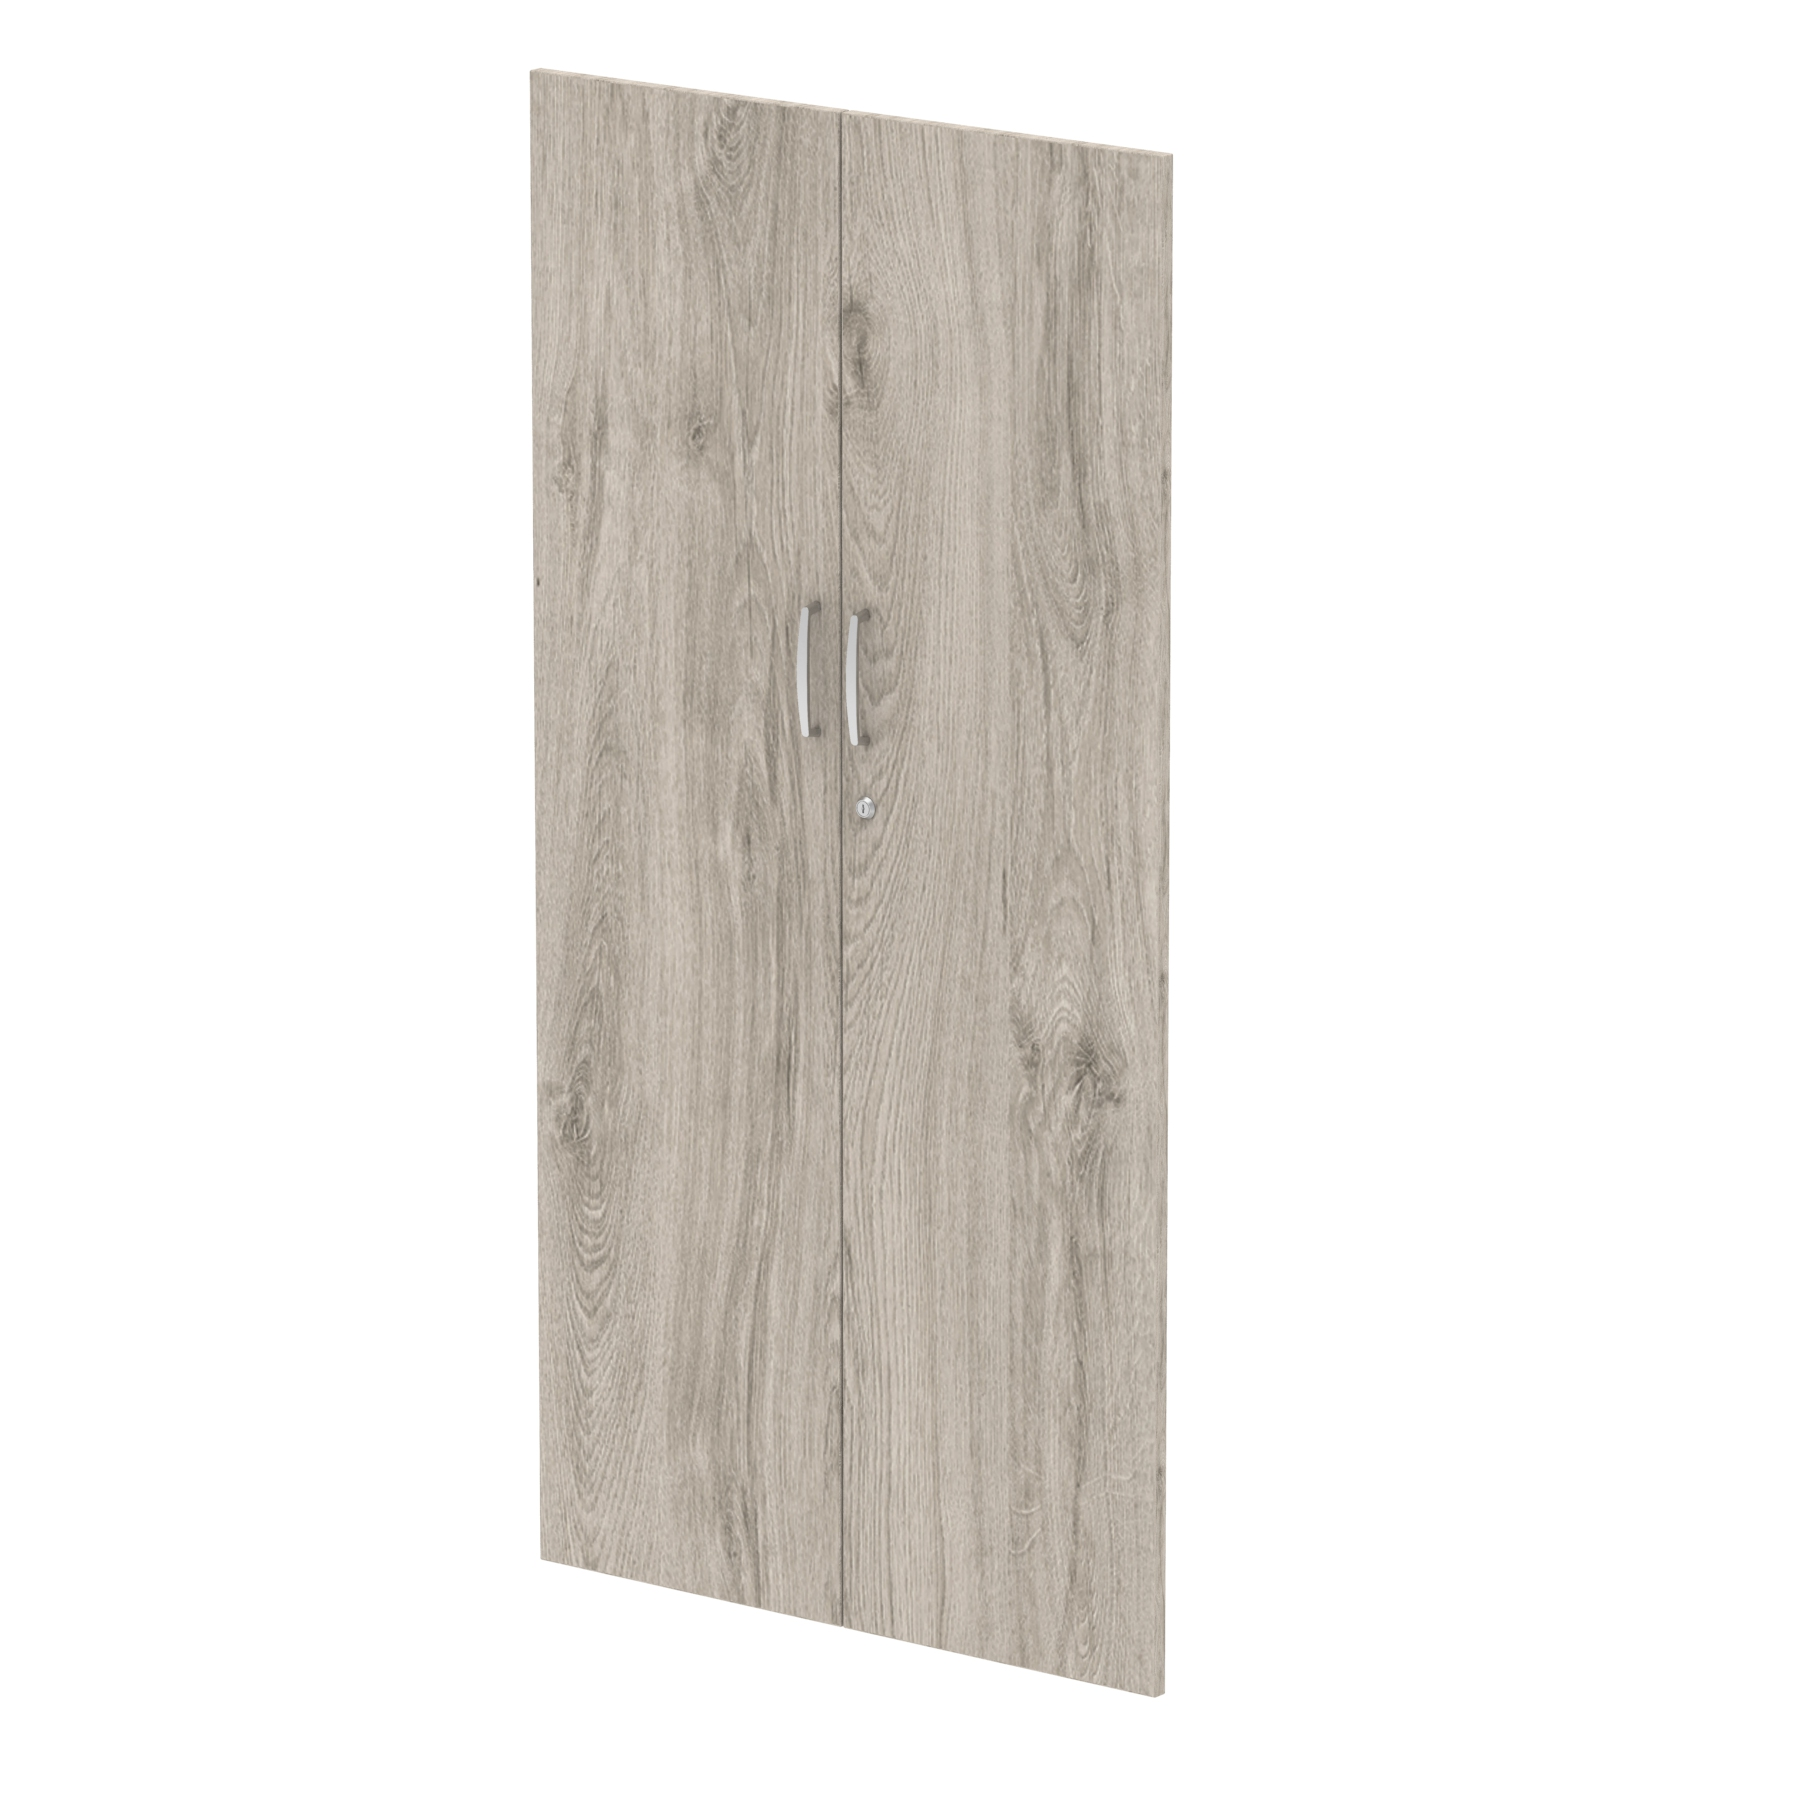 Filing cabinets or accesories Trexus Door Pack For 1600mm High Cupboard Grey Oak Ref I003233